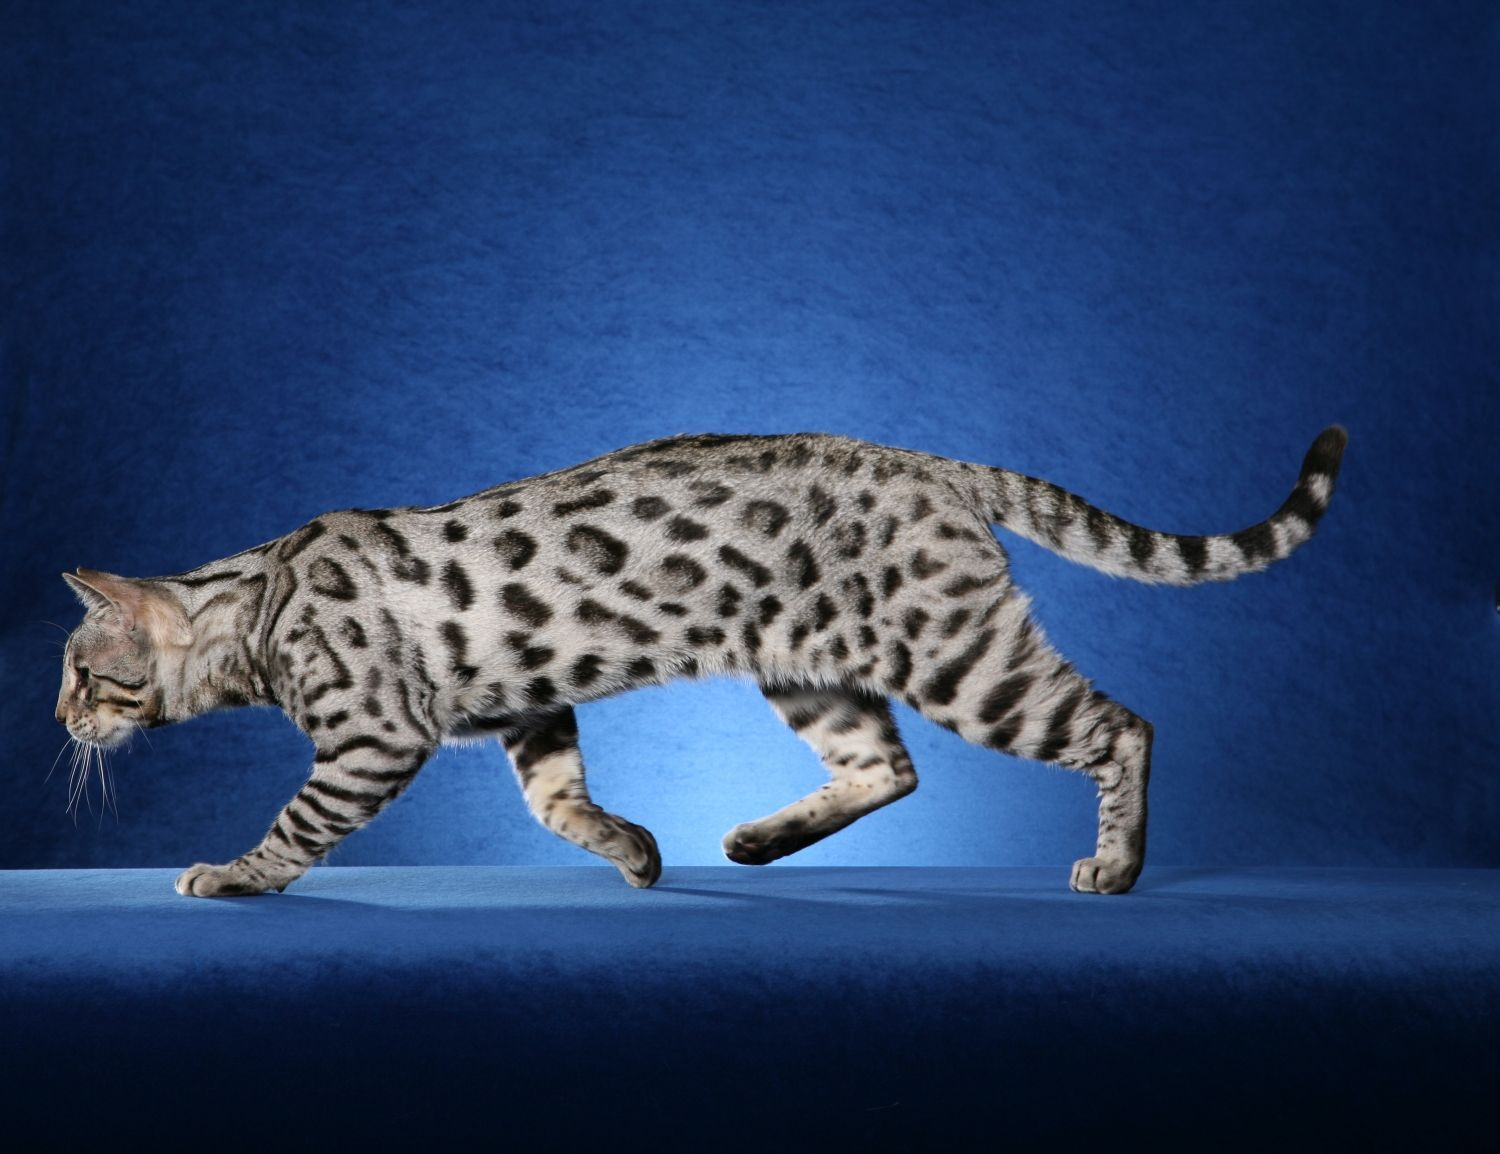 Image Detail For Silver Bengal Kittens For Sale Pet Breeder Show Quality Bengals Pinterest Bengal Kitten Bengal Cat Silver Bengal Cat